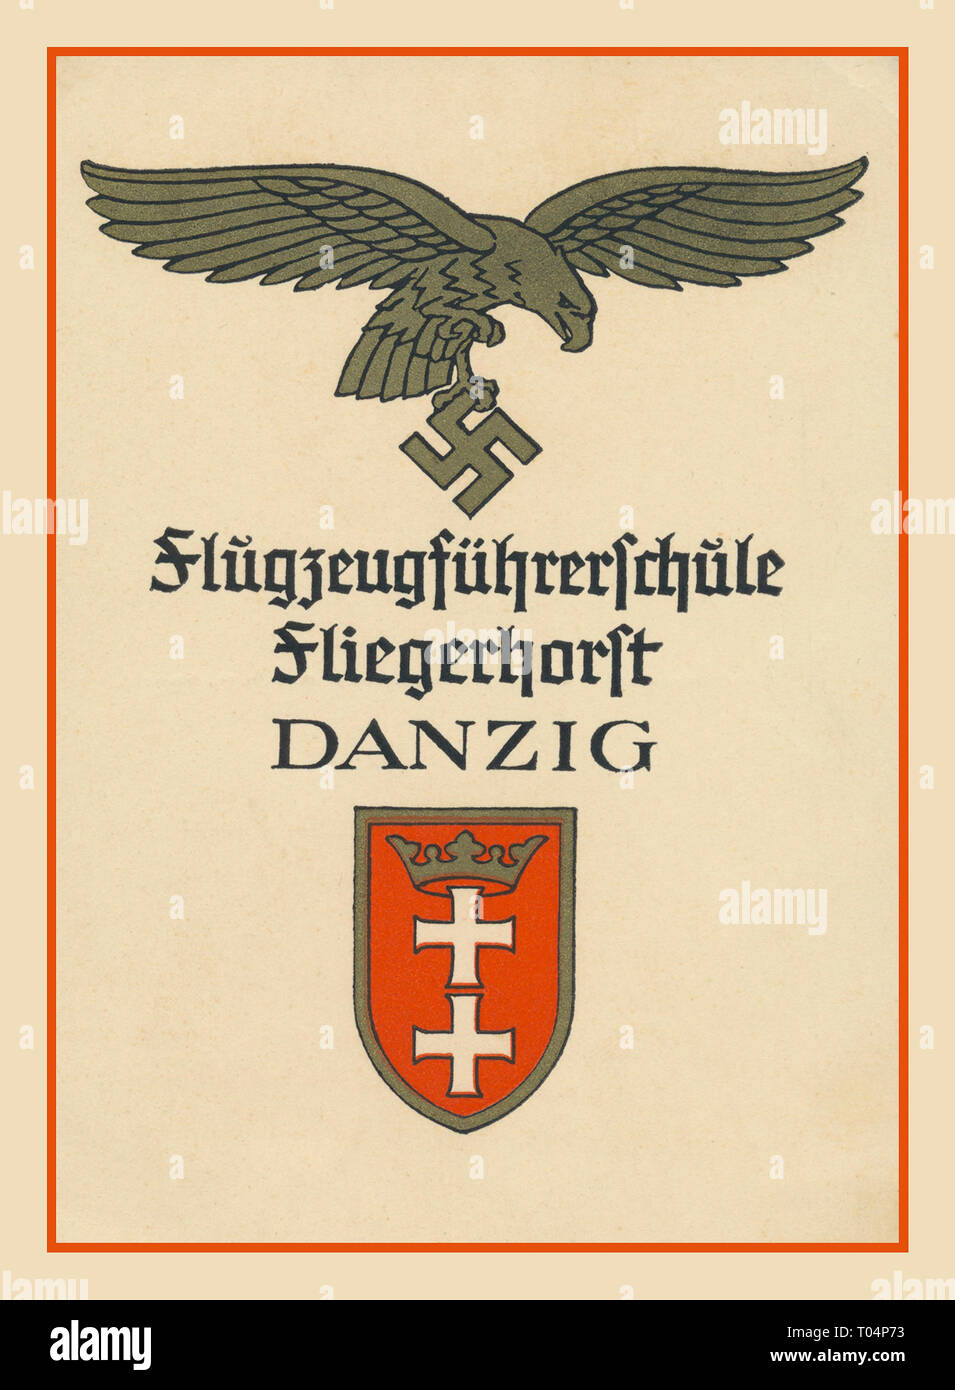 Nazi WW2 Official Postcard Propaganda 1940, 'aircraft pilot school air base Danzig', coloured propaganda card, used by the air cadet Luftwaffe post with military stamp. Germany Nazi Eagle carrying Swastika Luftwaffe symbol insignia World War II - Stock Image